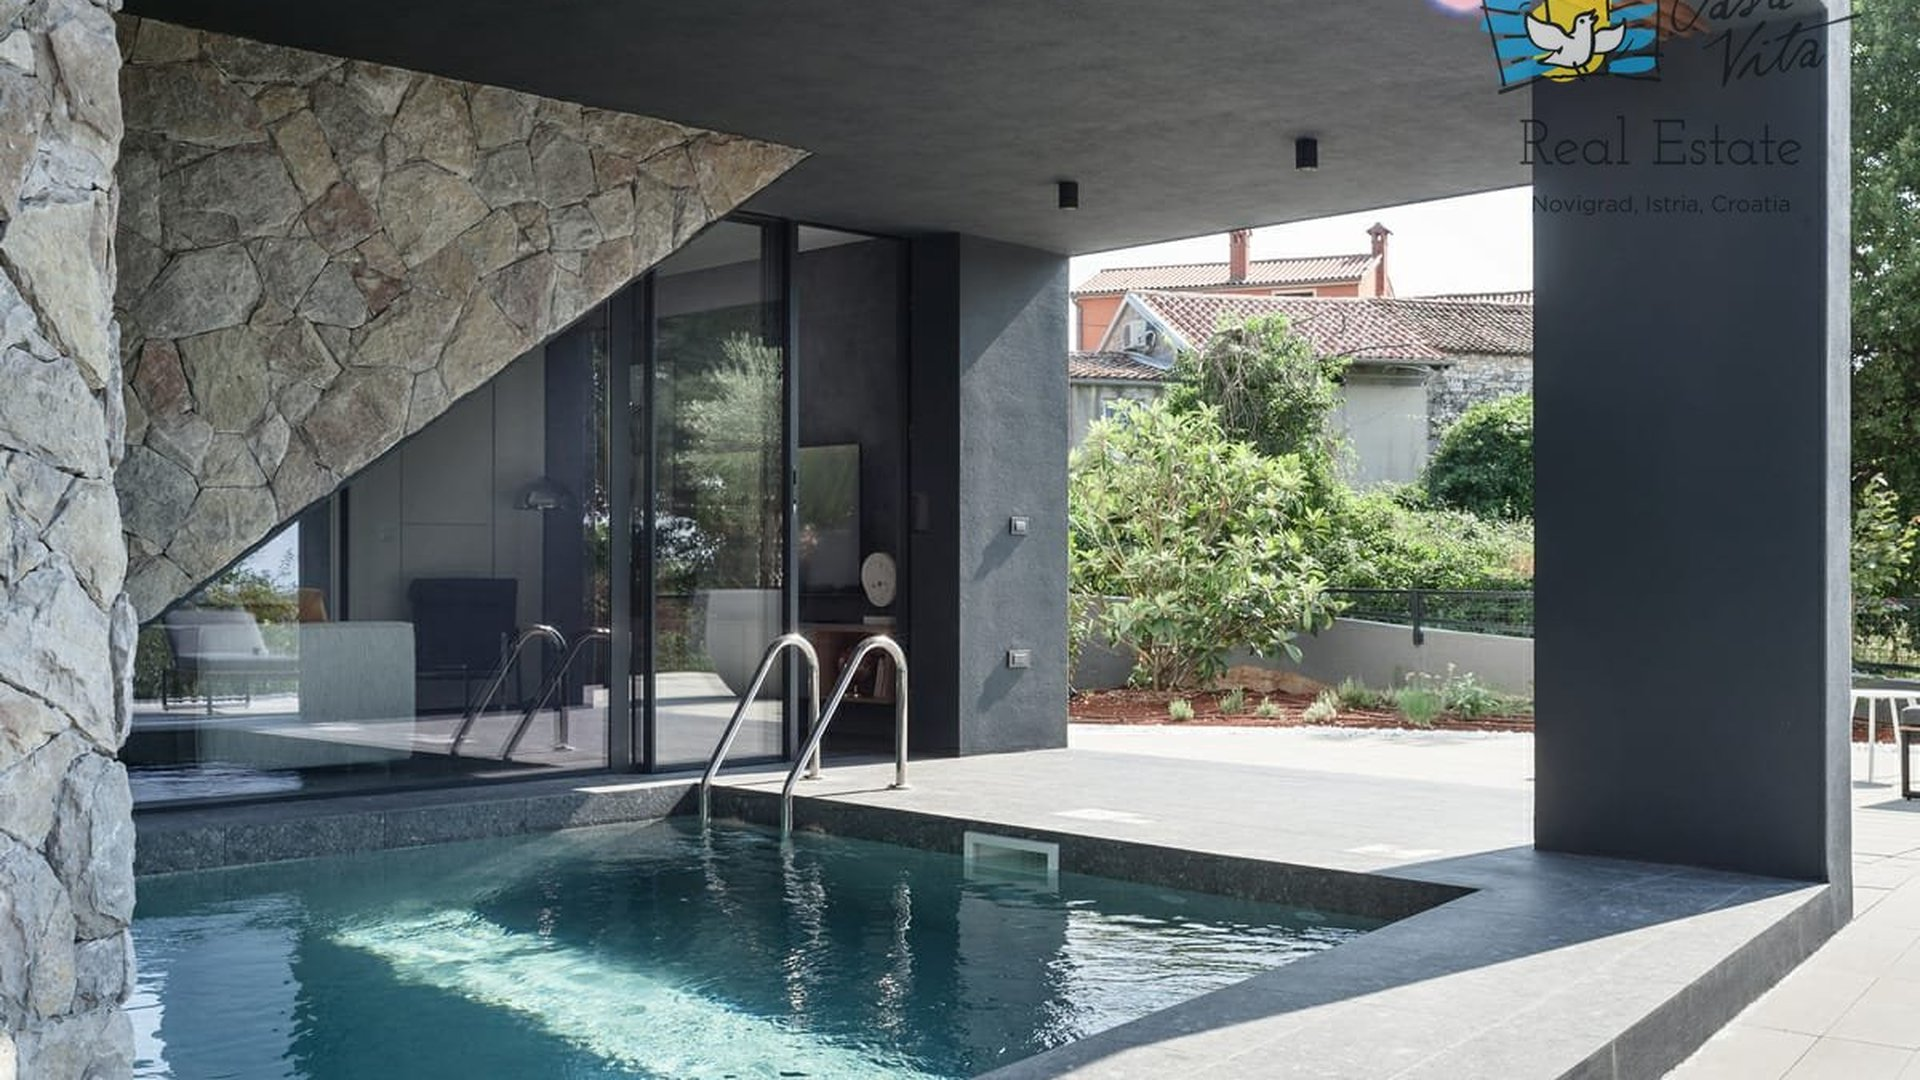 When buying a property with a pool, you just can't go wrong